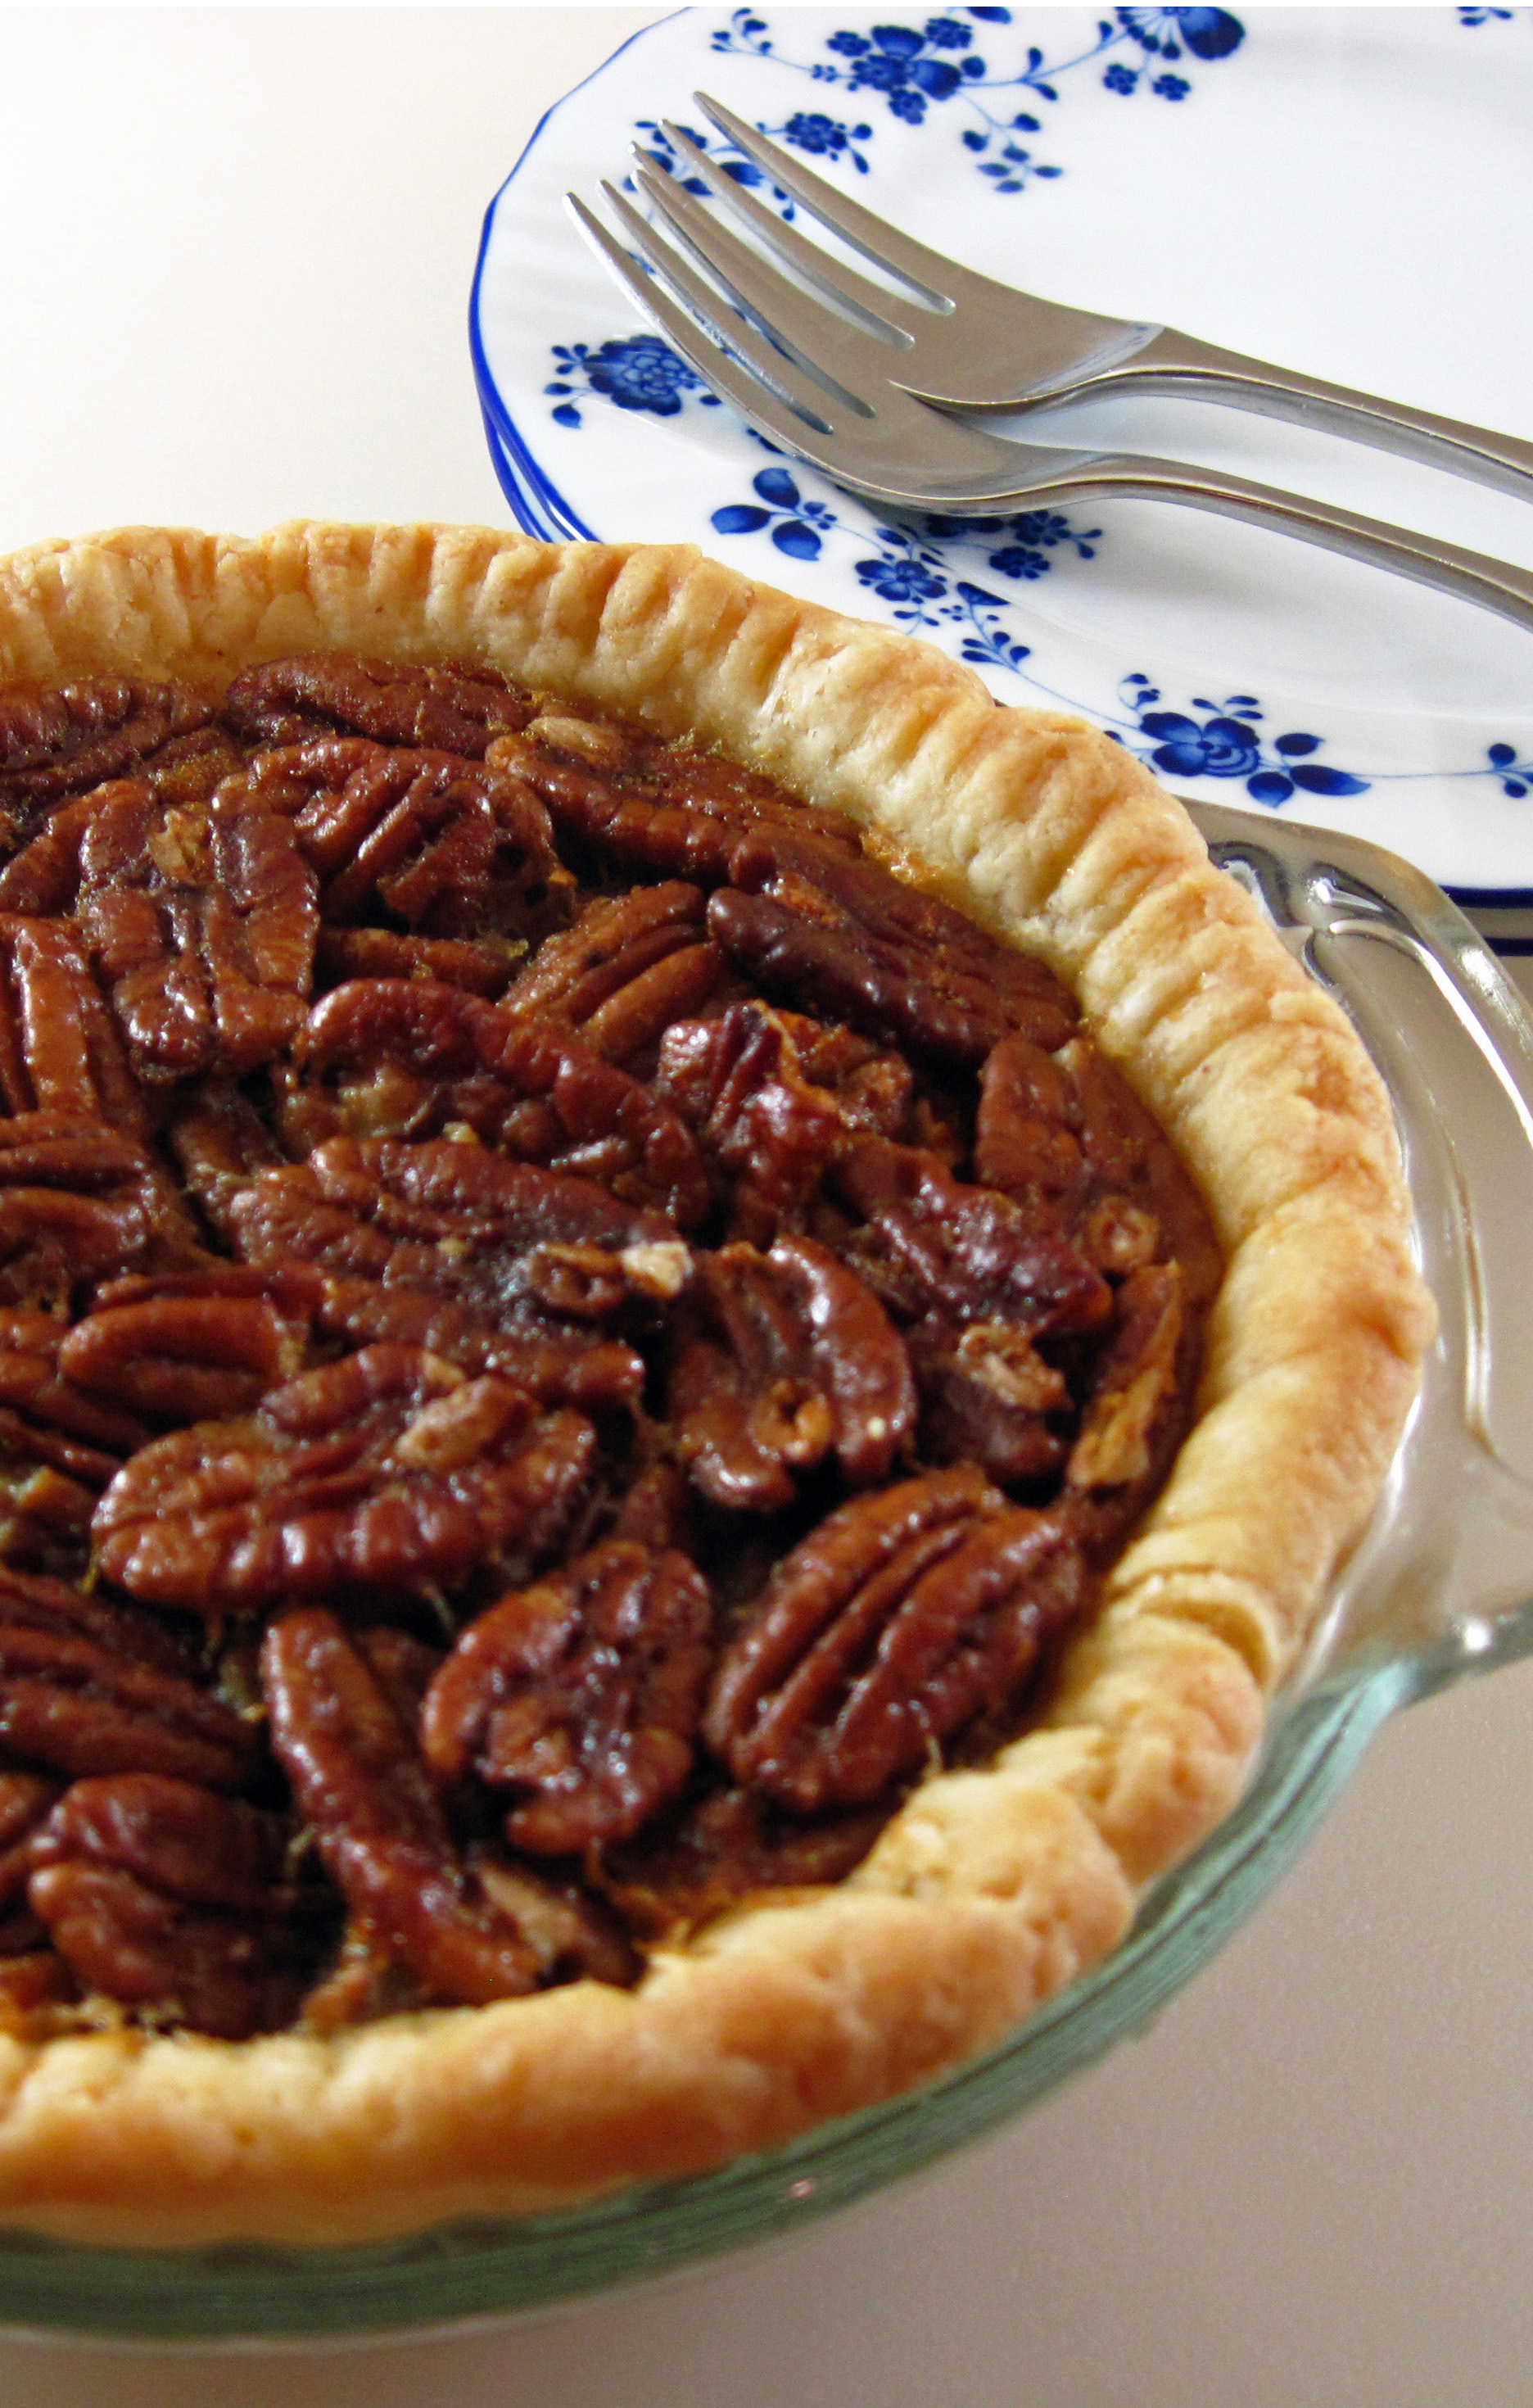 Petite Pecan Pie tall & Pecan Pie for Two in honor of Pi Day | In the kitchen with Kath